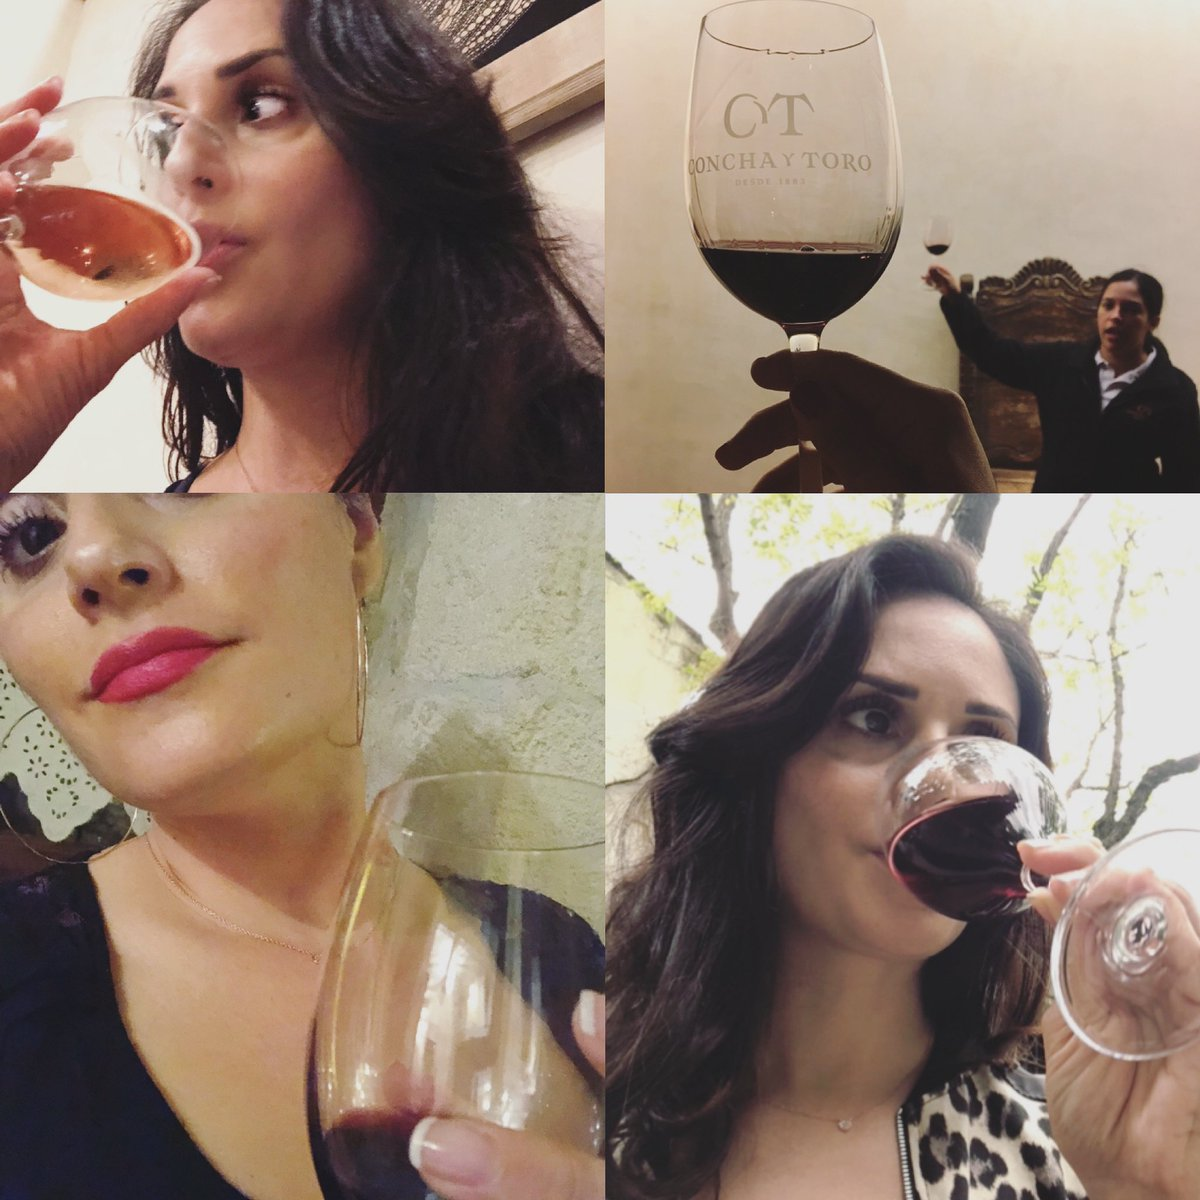 There are an astonishing number of photos of me enjoying a glass(es?) of #Vino  #NoRegrets #Salud ♡ Happy #NationalWineDay  ♡ #Vancouver #Wine #France #Italy #Chile #Canada #Germany #WineLoverpic.twitter.com/z61NQXiQkL